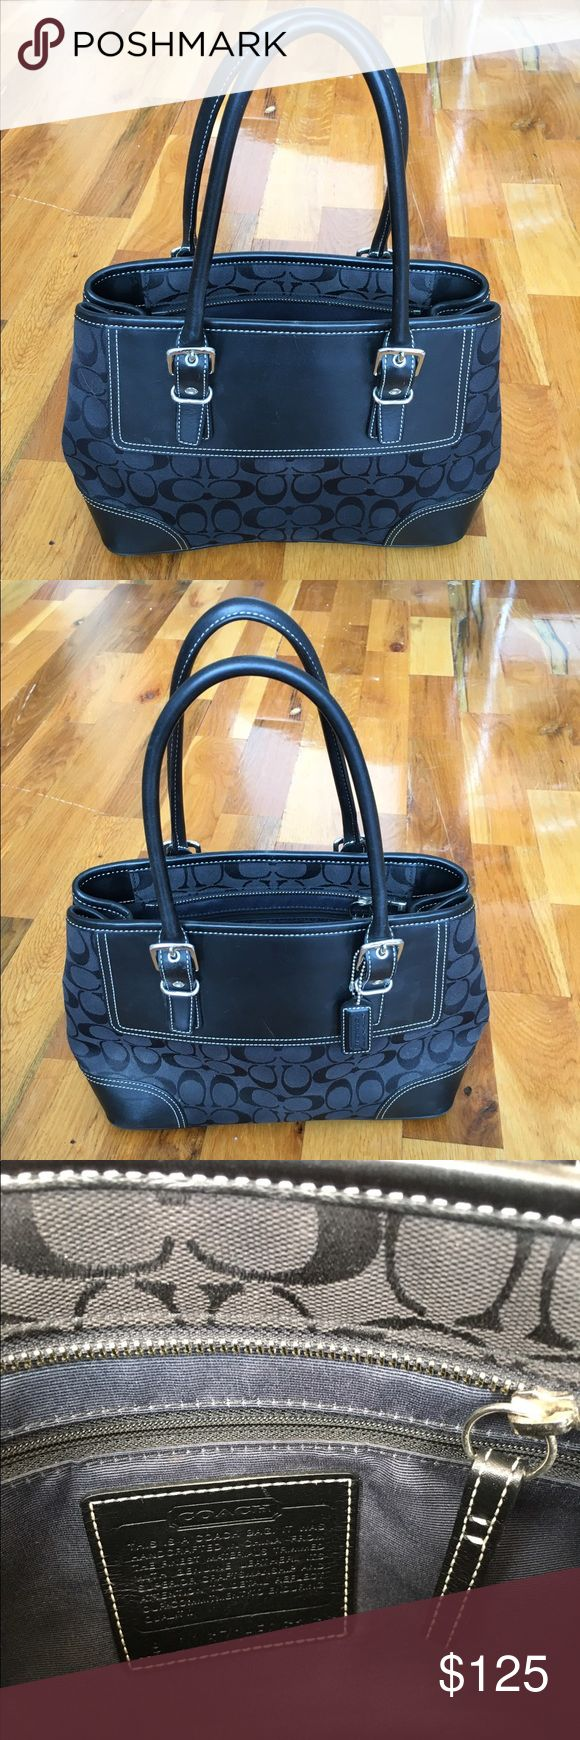 """Coach signature carryall purse Black Gray 14 x 9 Coach Small Carryall in Signature Canvas with leather trim in Black/Gray.  Inside zip, cellphone and multifunctional pockets.  Snap cinched sides, fabric lining.  13 3/4"""" (L) x 9"""" (H) x 5"""" (D) --- a few tiny surface scuffs that you can barely see, otherwise in perfect condition. Originally bought from the Coach store in a mall for $395 and has been sitting in my closet.  (5"""" widest depth, 2"""" depth when snapped closed) Coach Bags"""